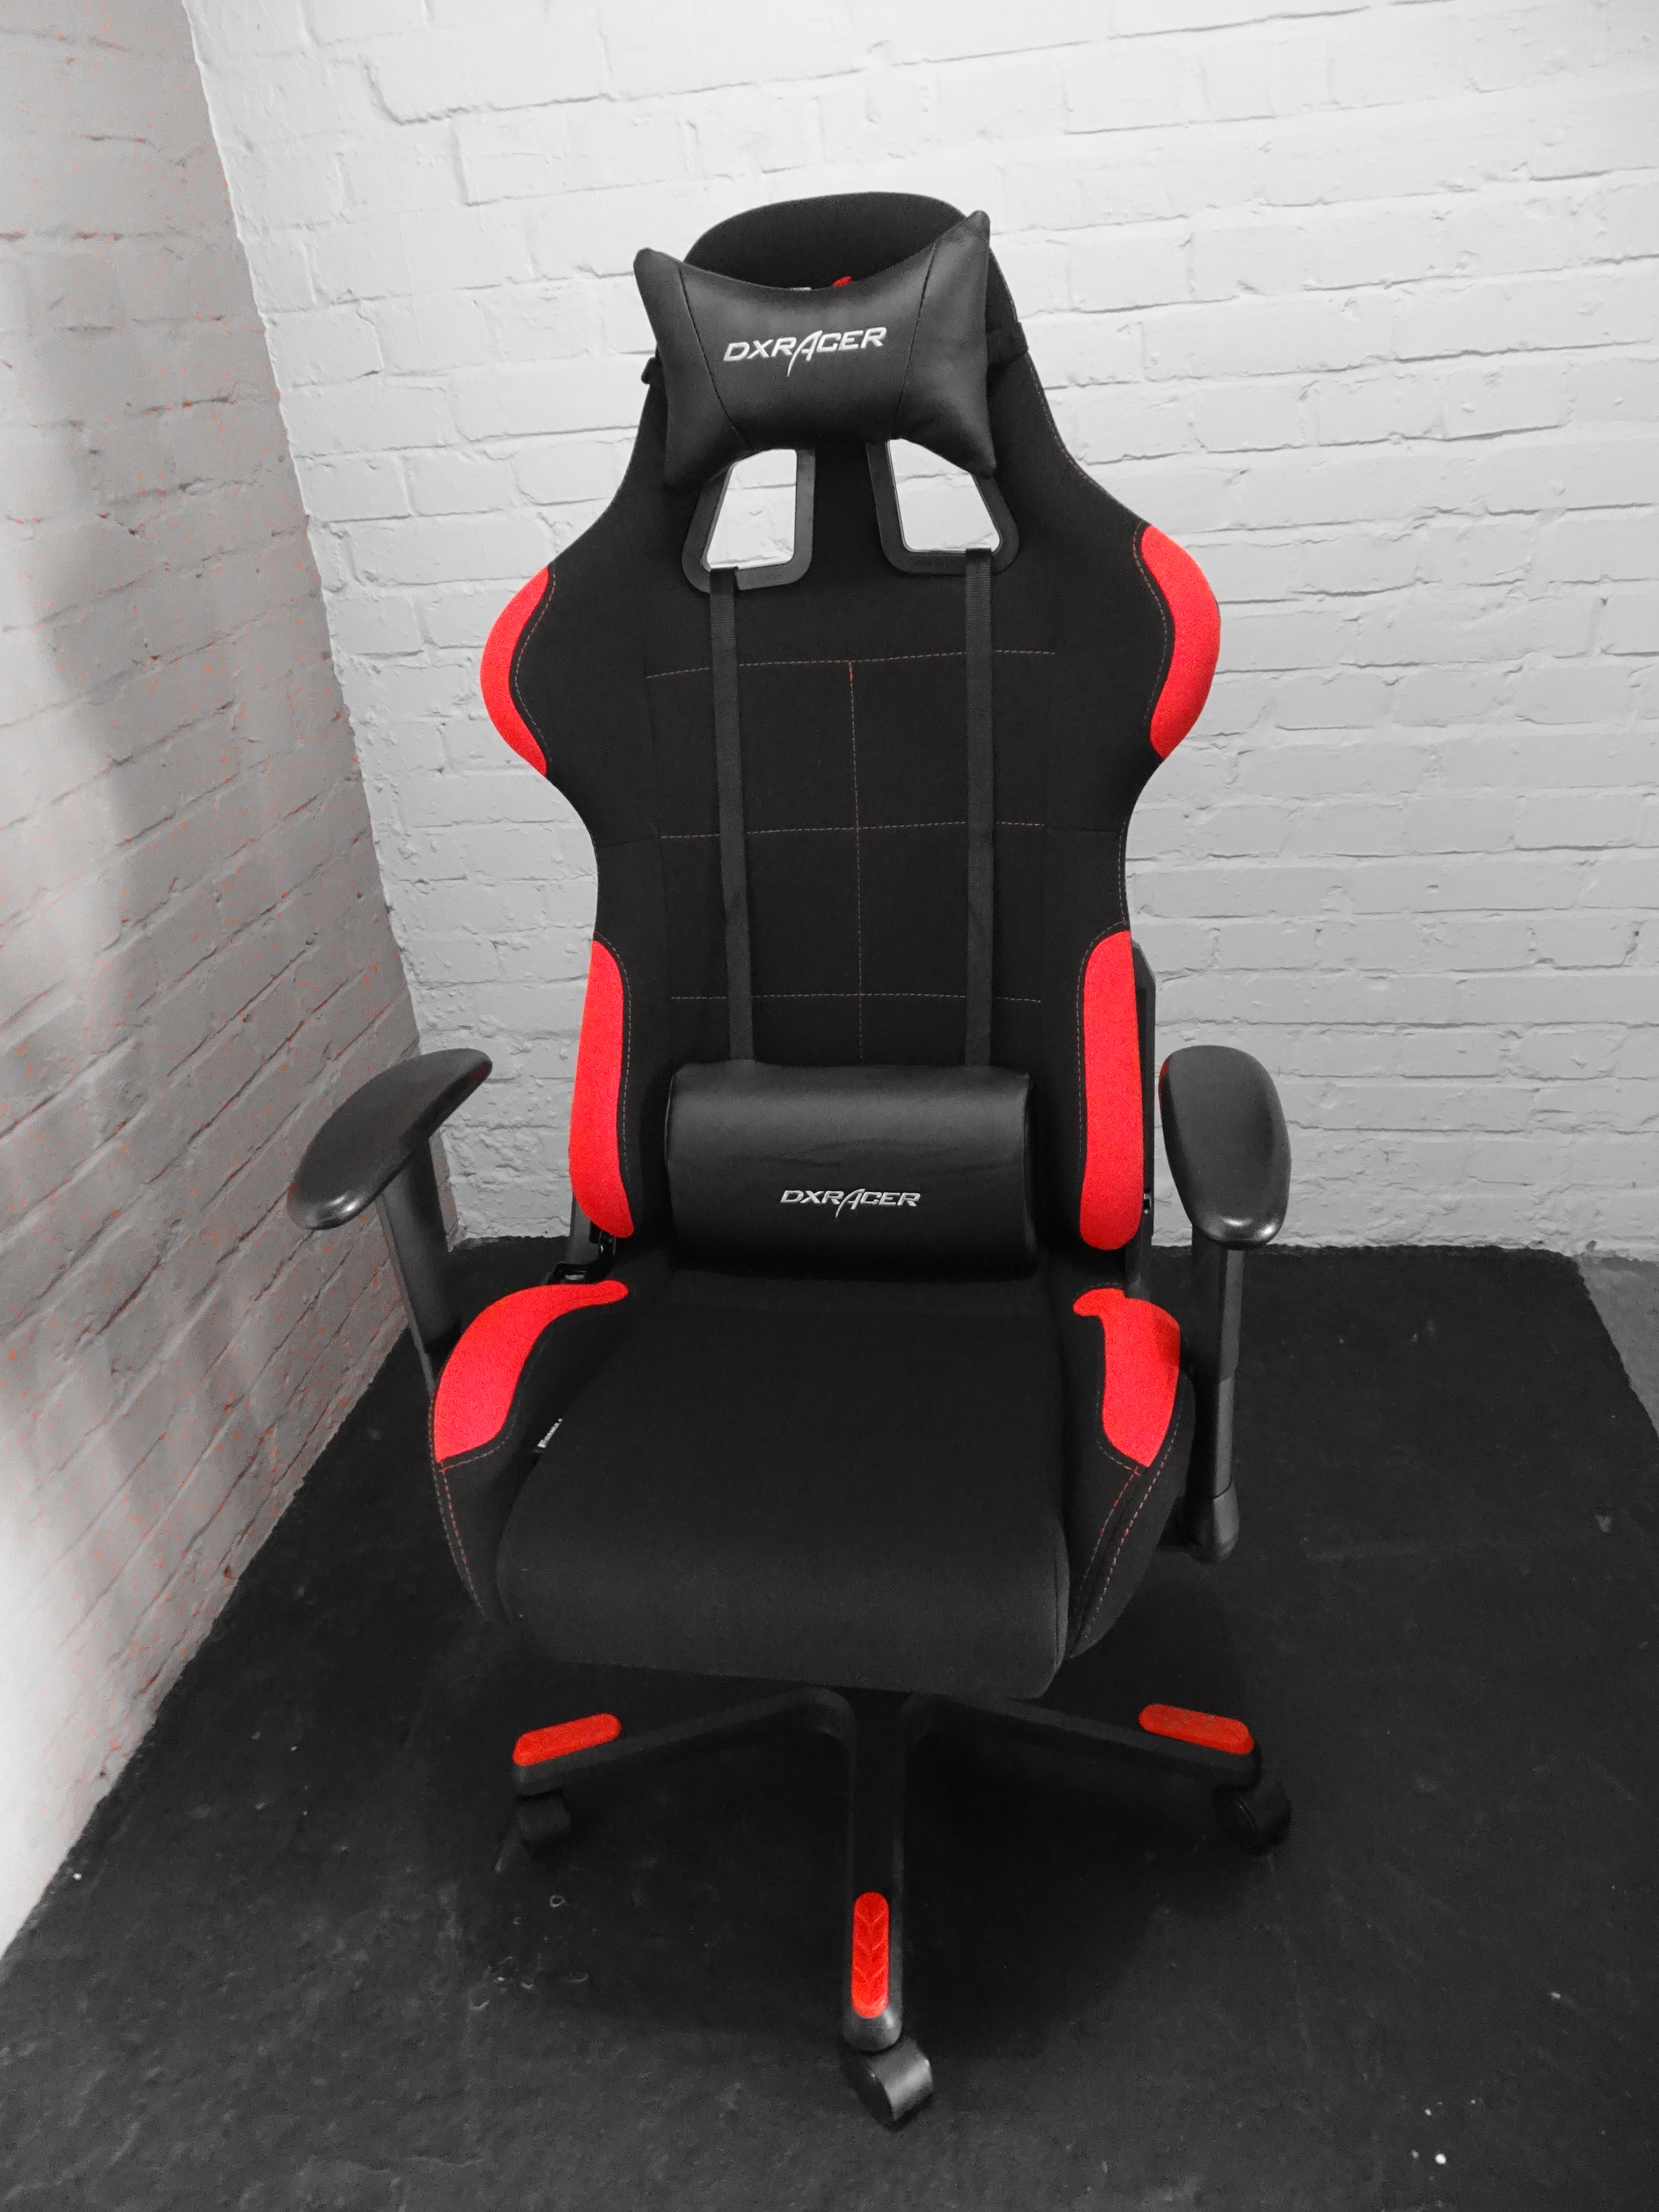 5 moreover Akracing Nitro Gaming Chair Red as well Sillas Gaming together with Dxracer Formula Gaming Chair Im Test A41903 in addition TheRPGMinx. on gamer chair